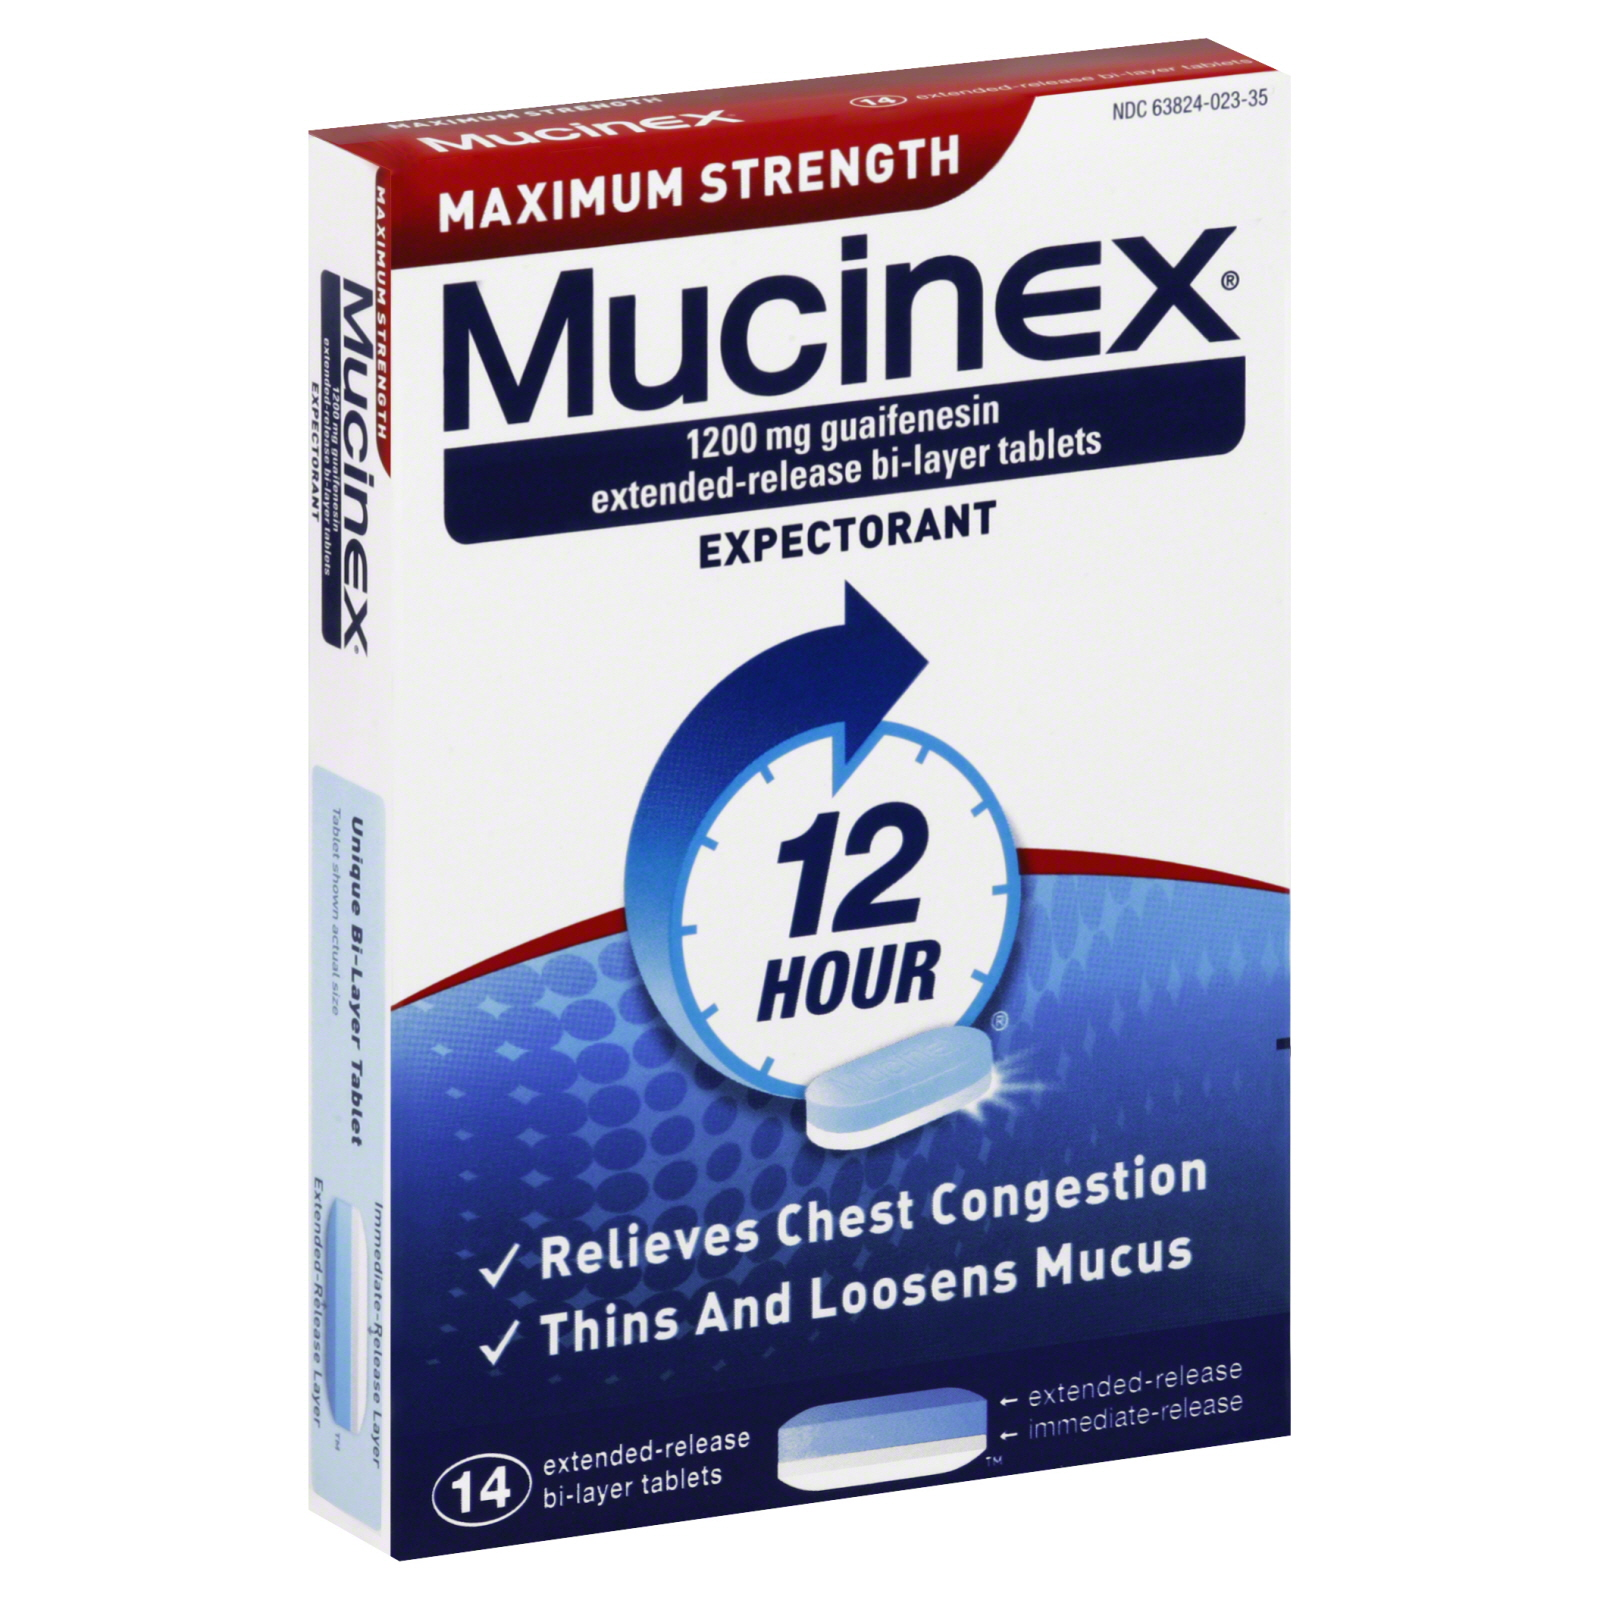 Mucinex  Expectorant, 12 Hour, Maximum